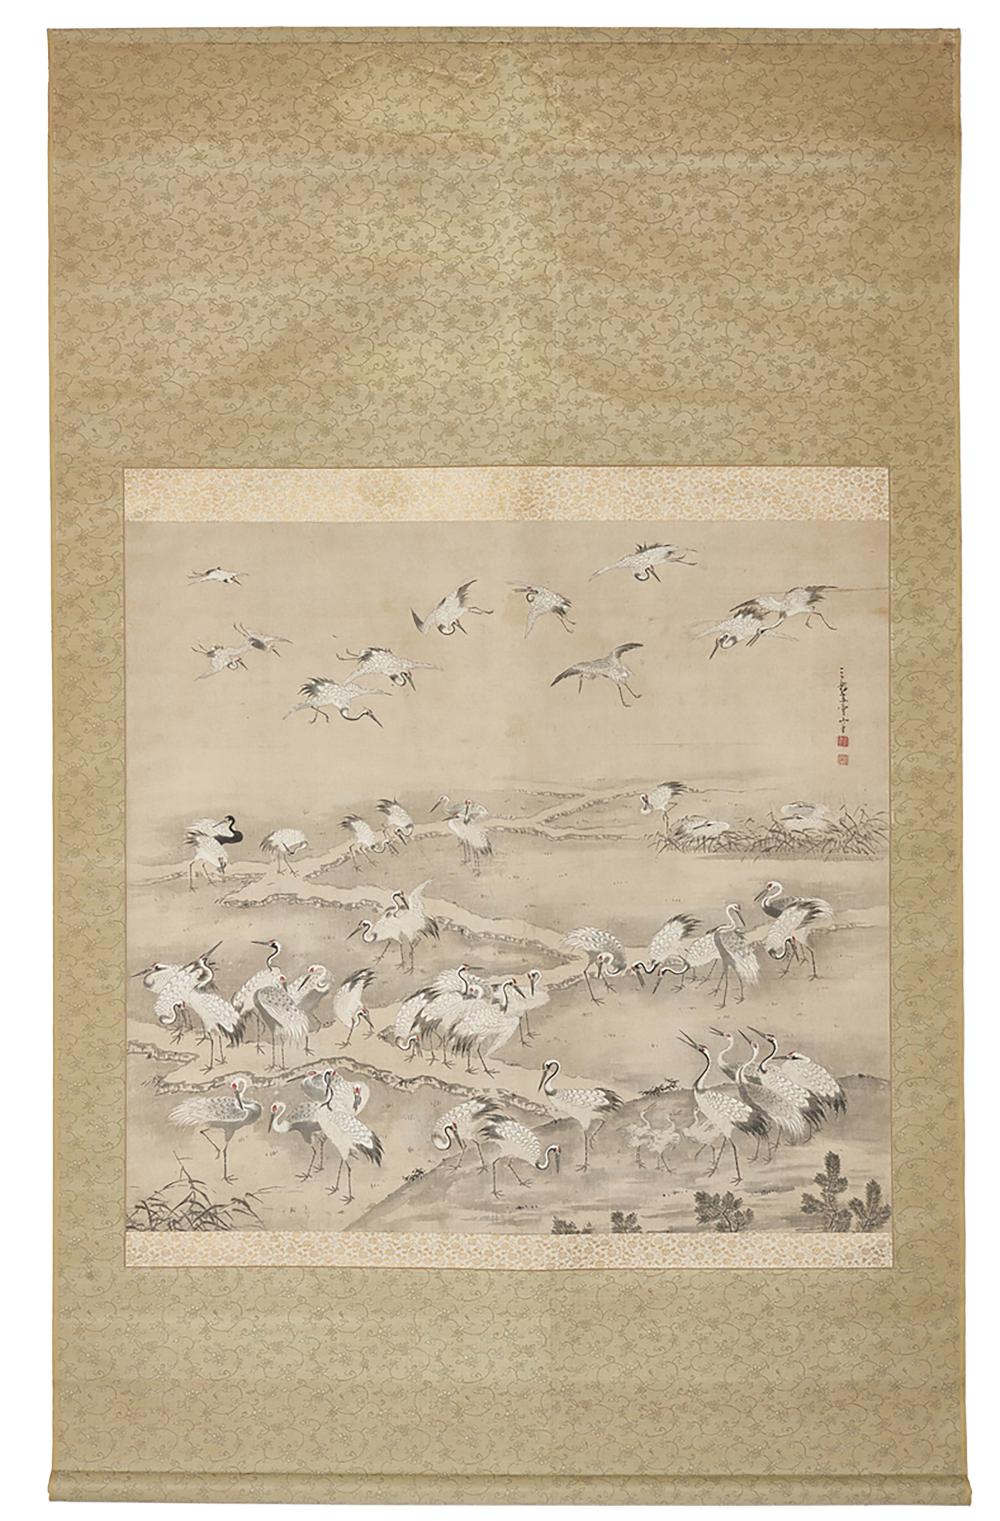 Hanging scroll (kakejiku) with a painting of a flock of white cranes gather